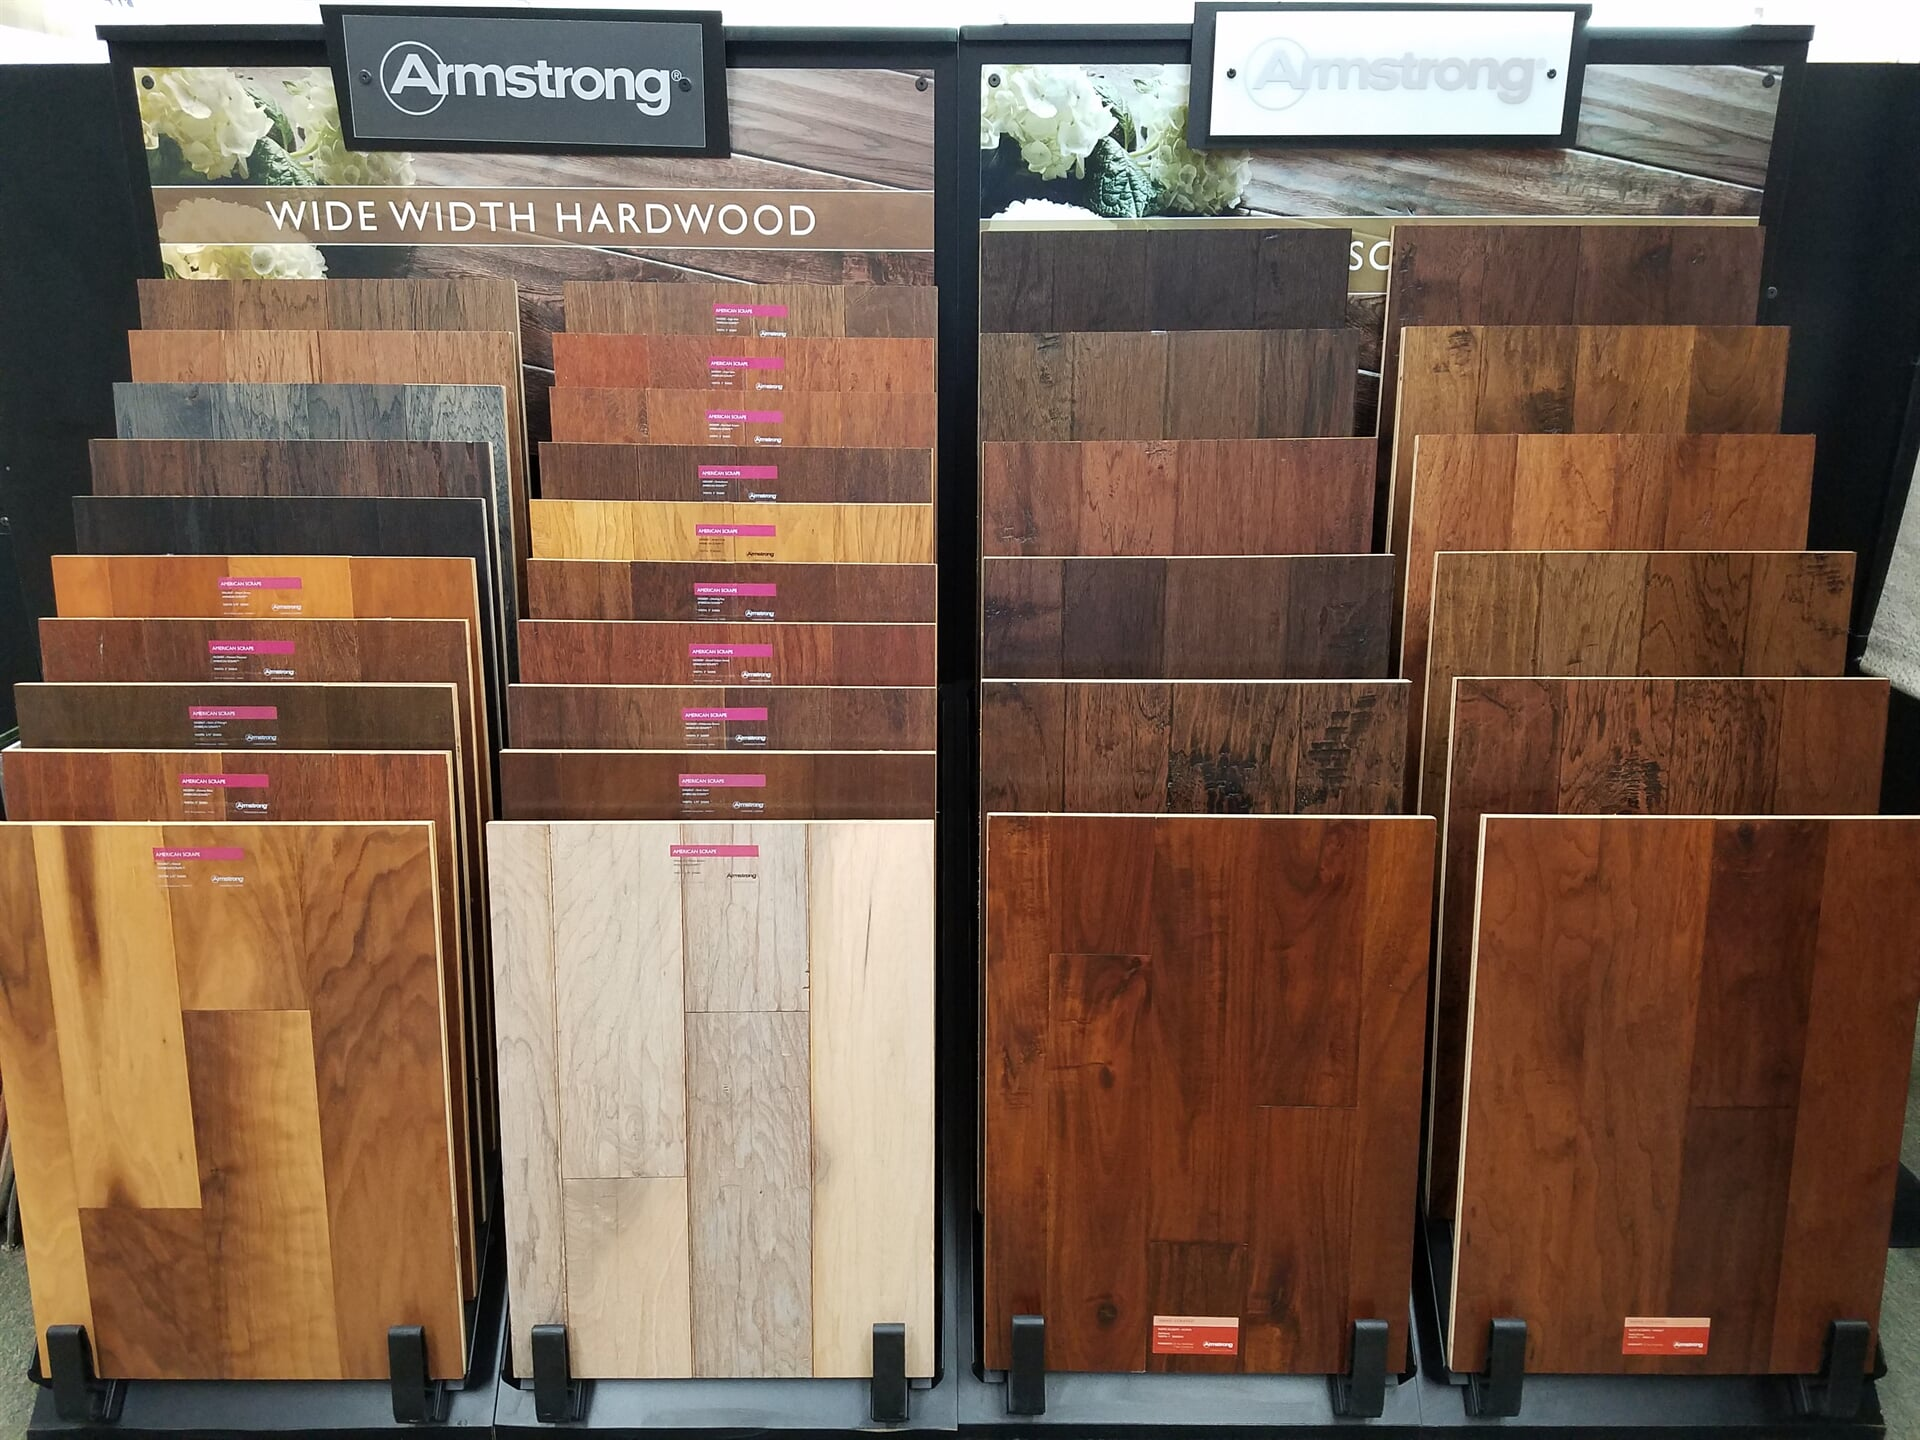 Armstrong hardwood flooring for your McMinnville, TN home from L&M Floors